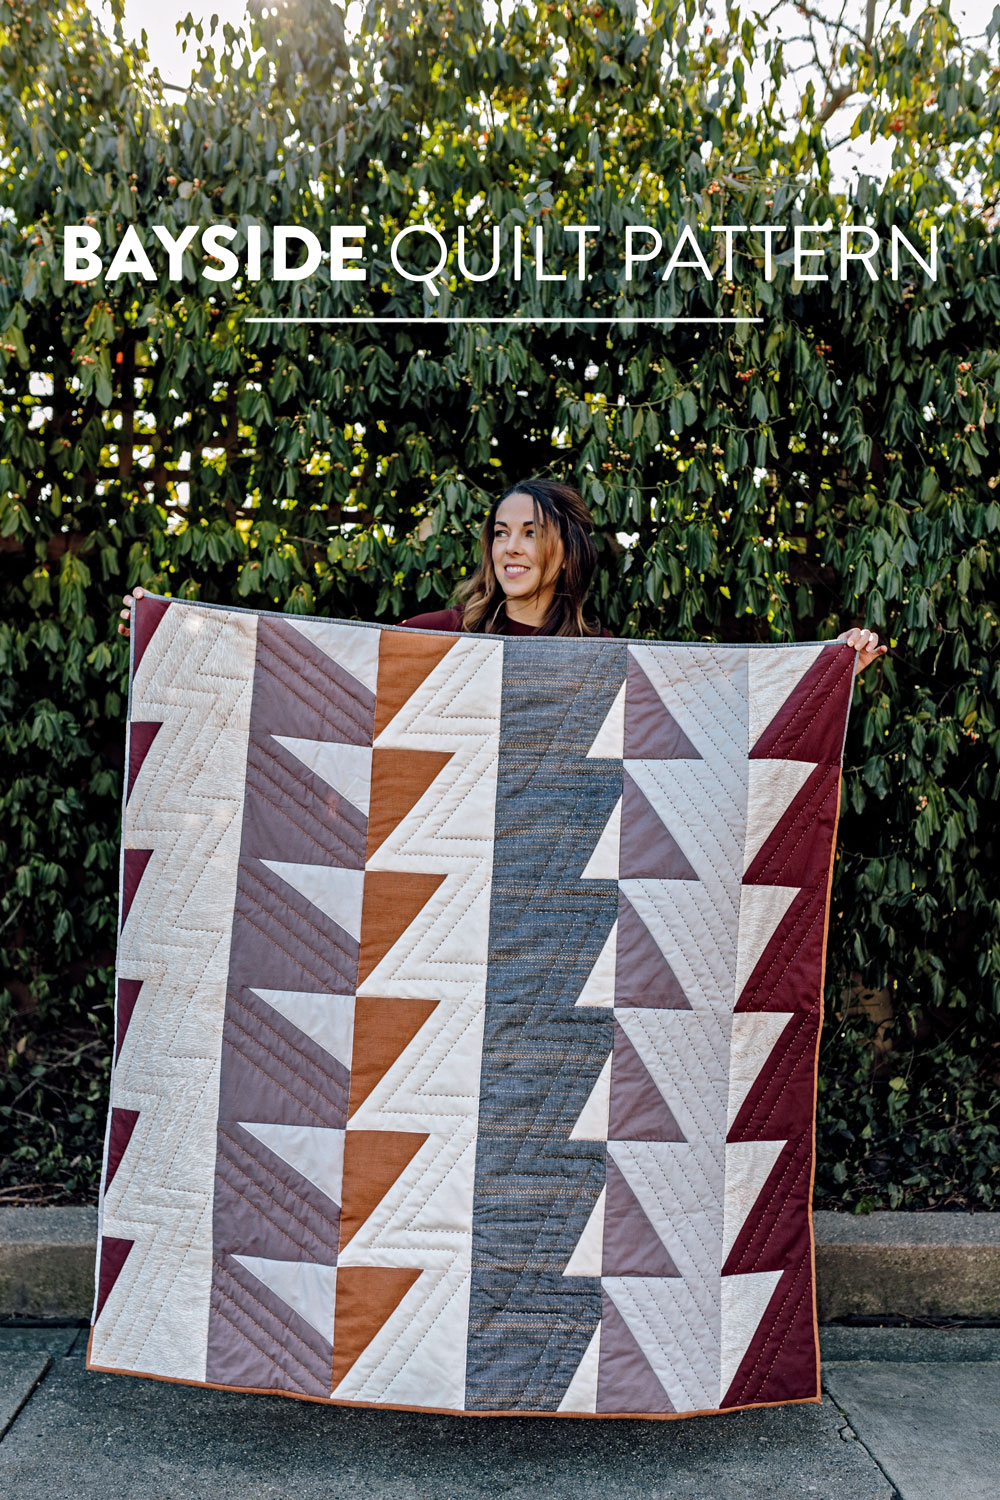 The Bayside Quilt Pattern, Fresh Modern Quilt Design Fabric Inspiration | Suzy Quilts https://suzyquilts.com/bayside-quilt-pattern-video-tutorial